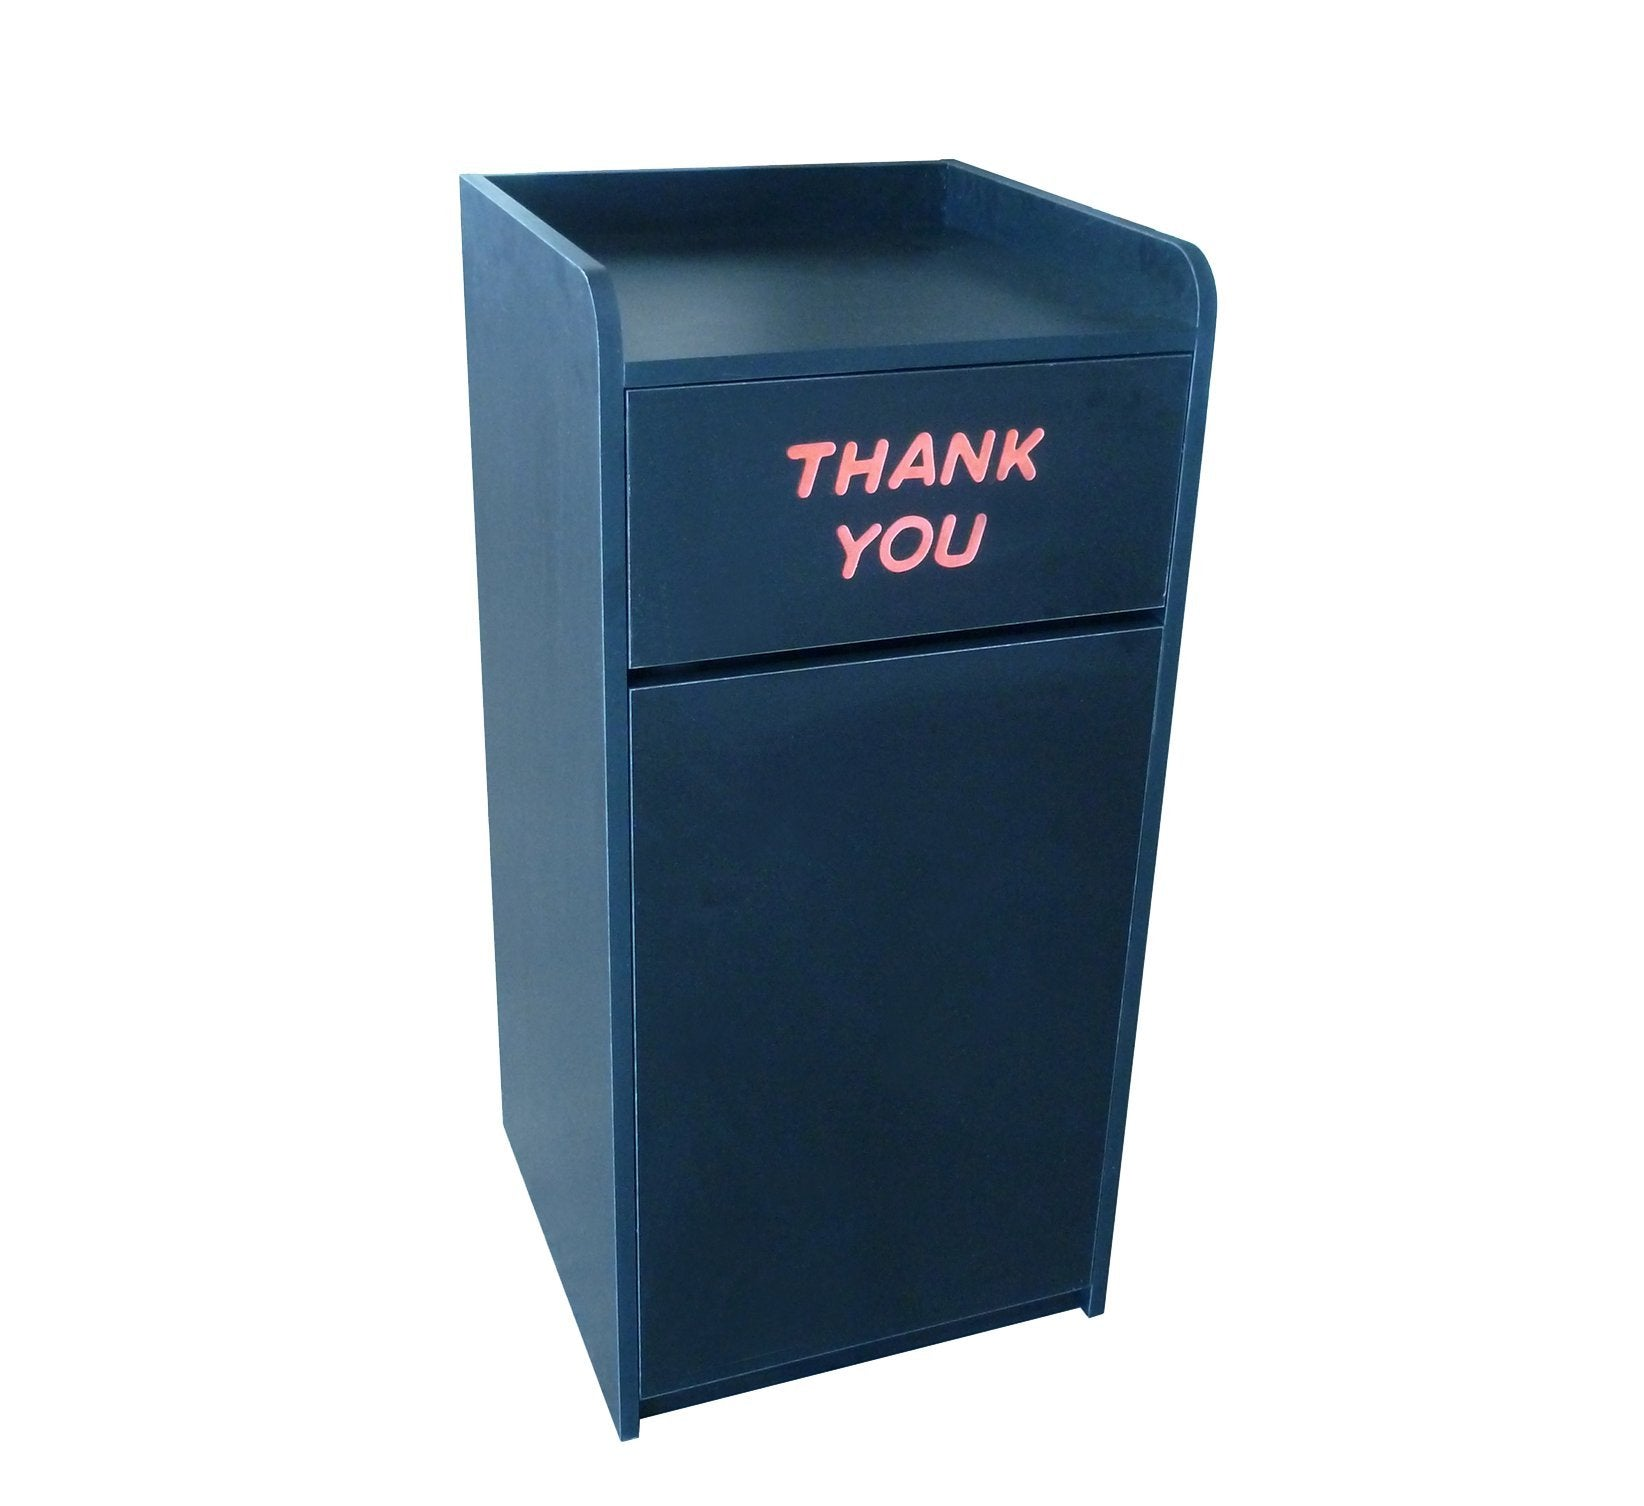 DHC TC-828-BLK Trash Cabinet, Black Laminate